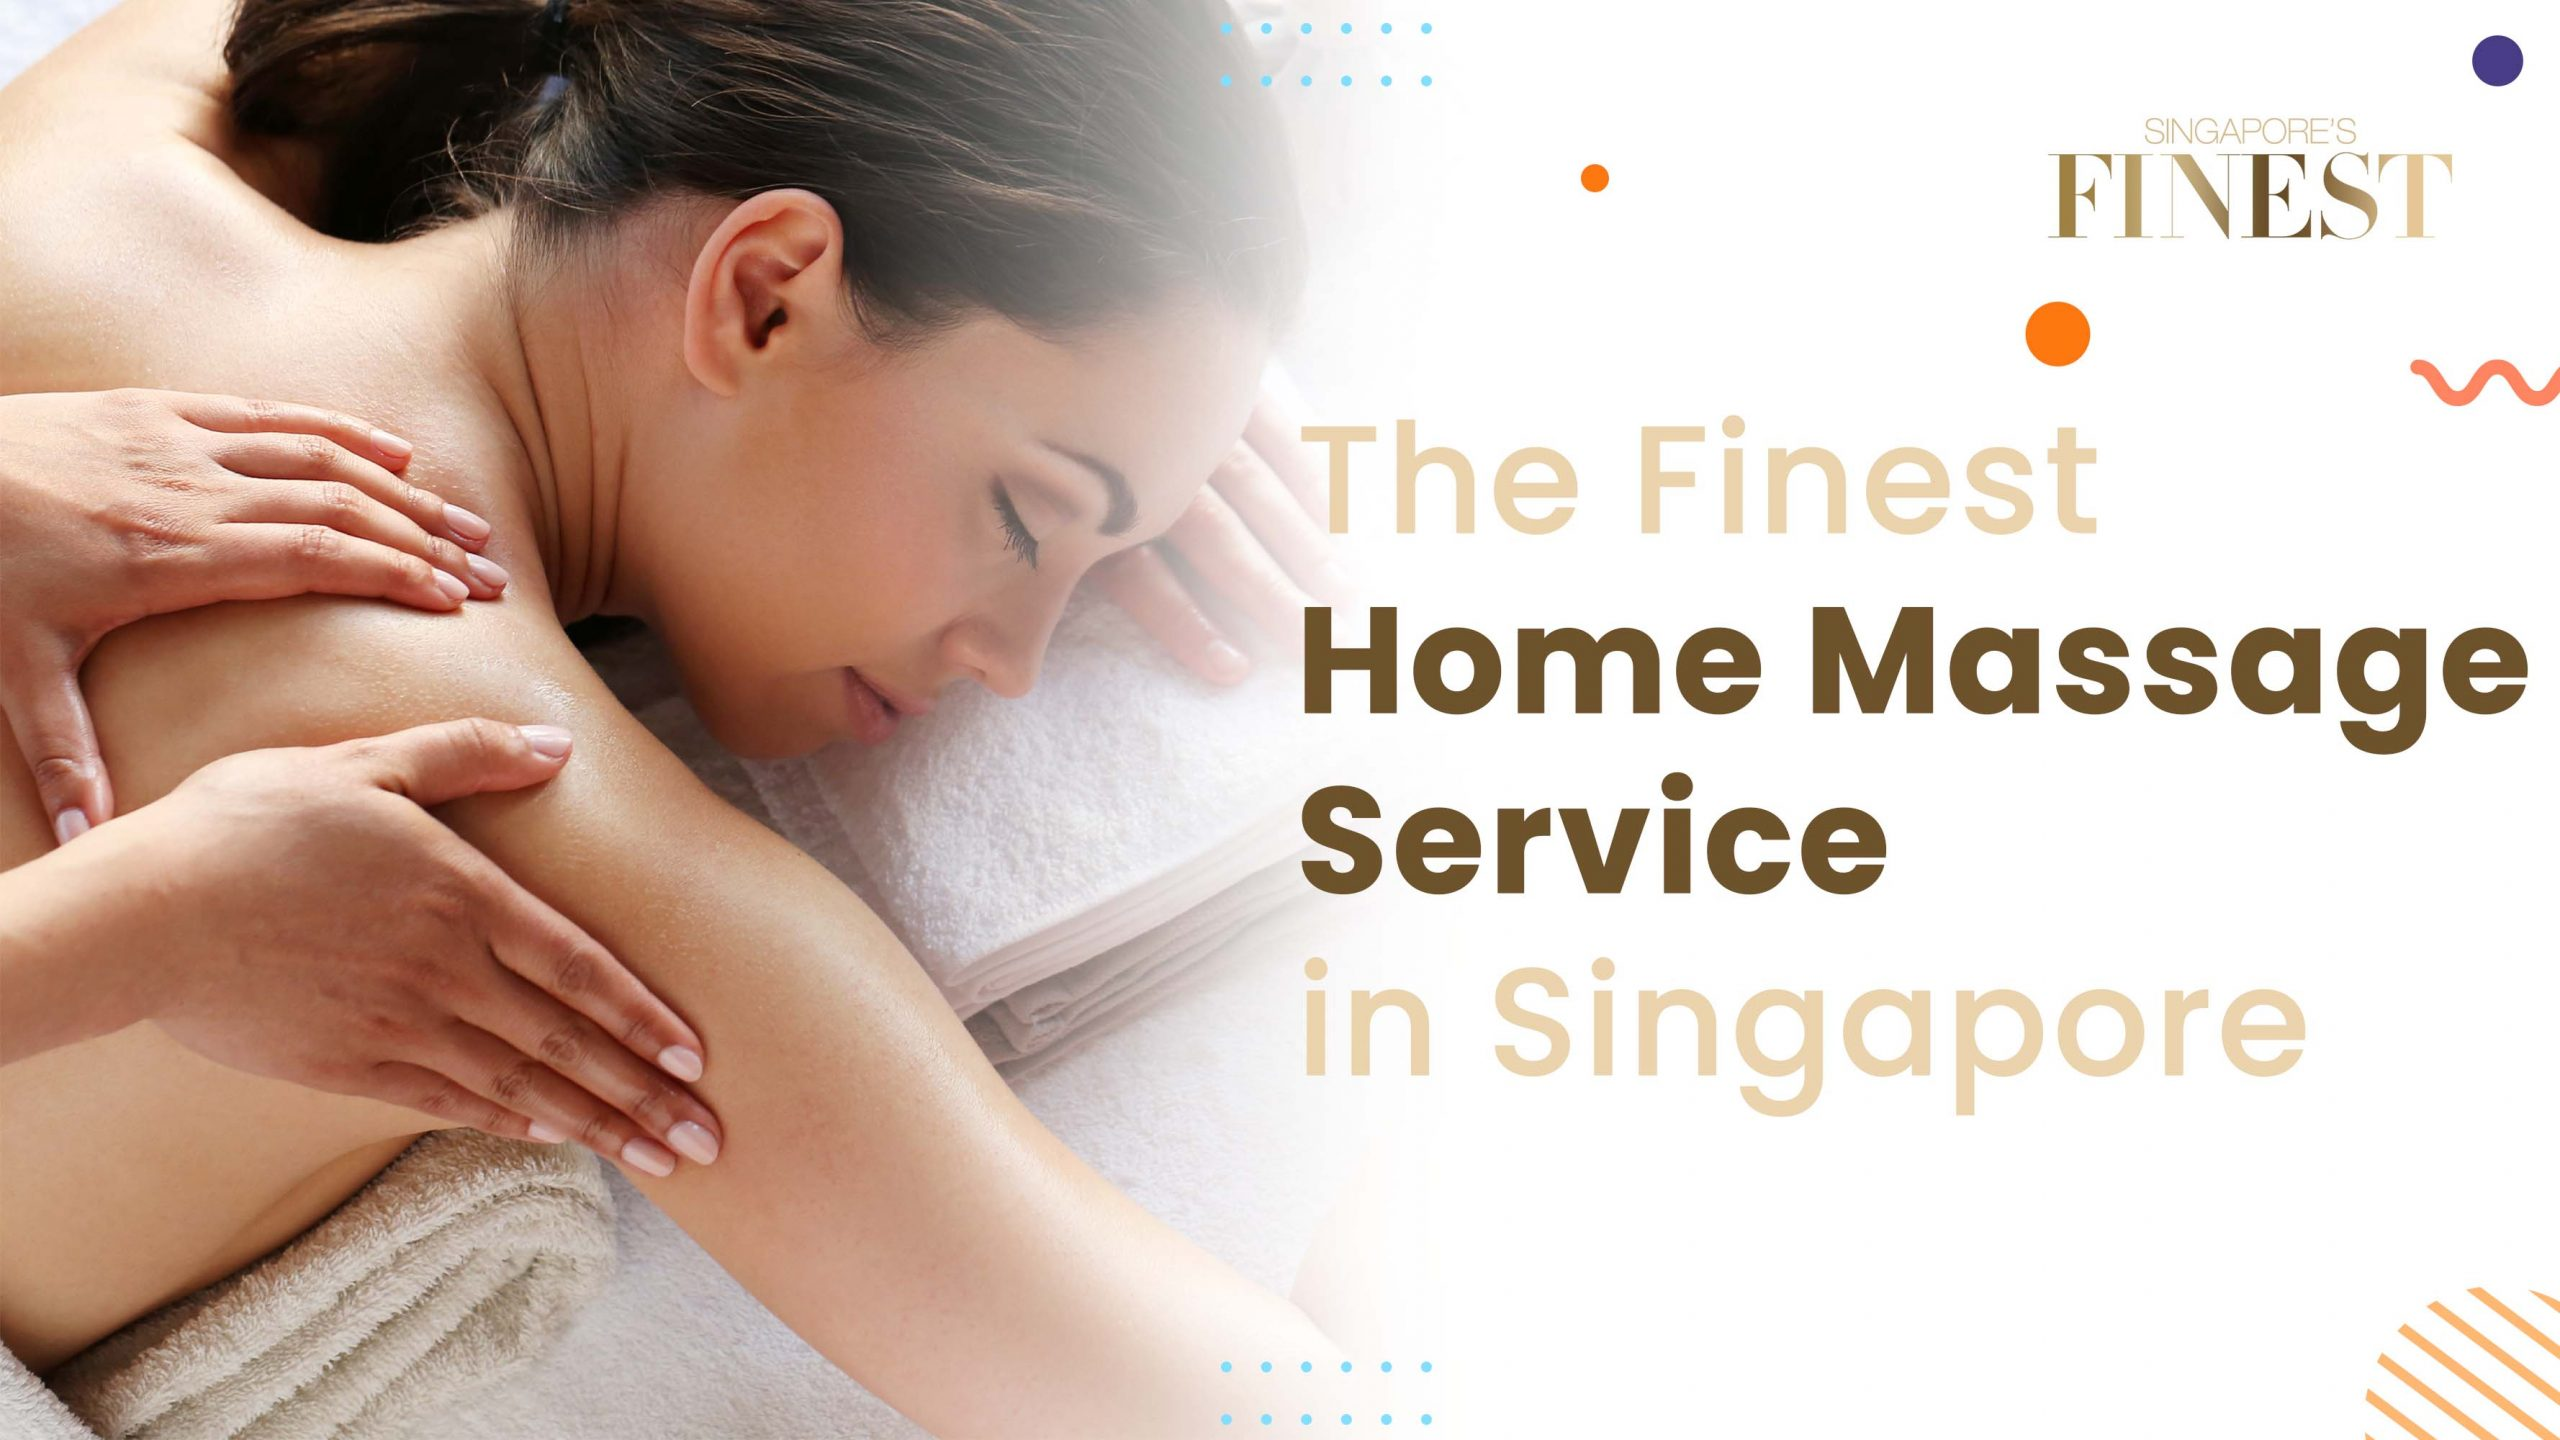 Finest Home Massage Service in Singapore